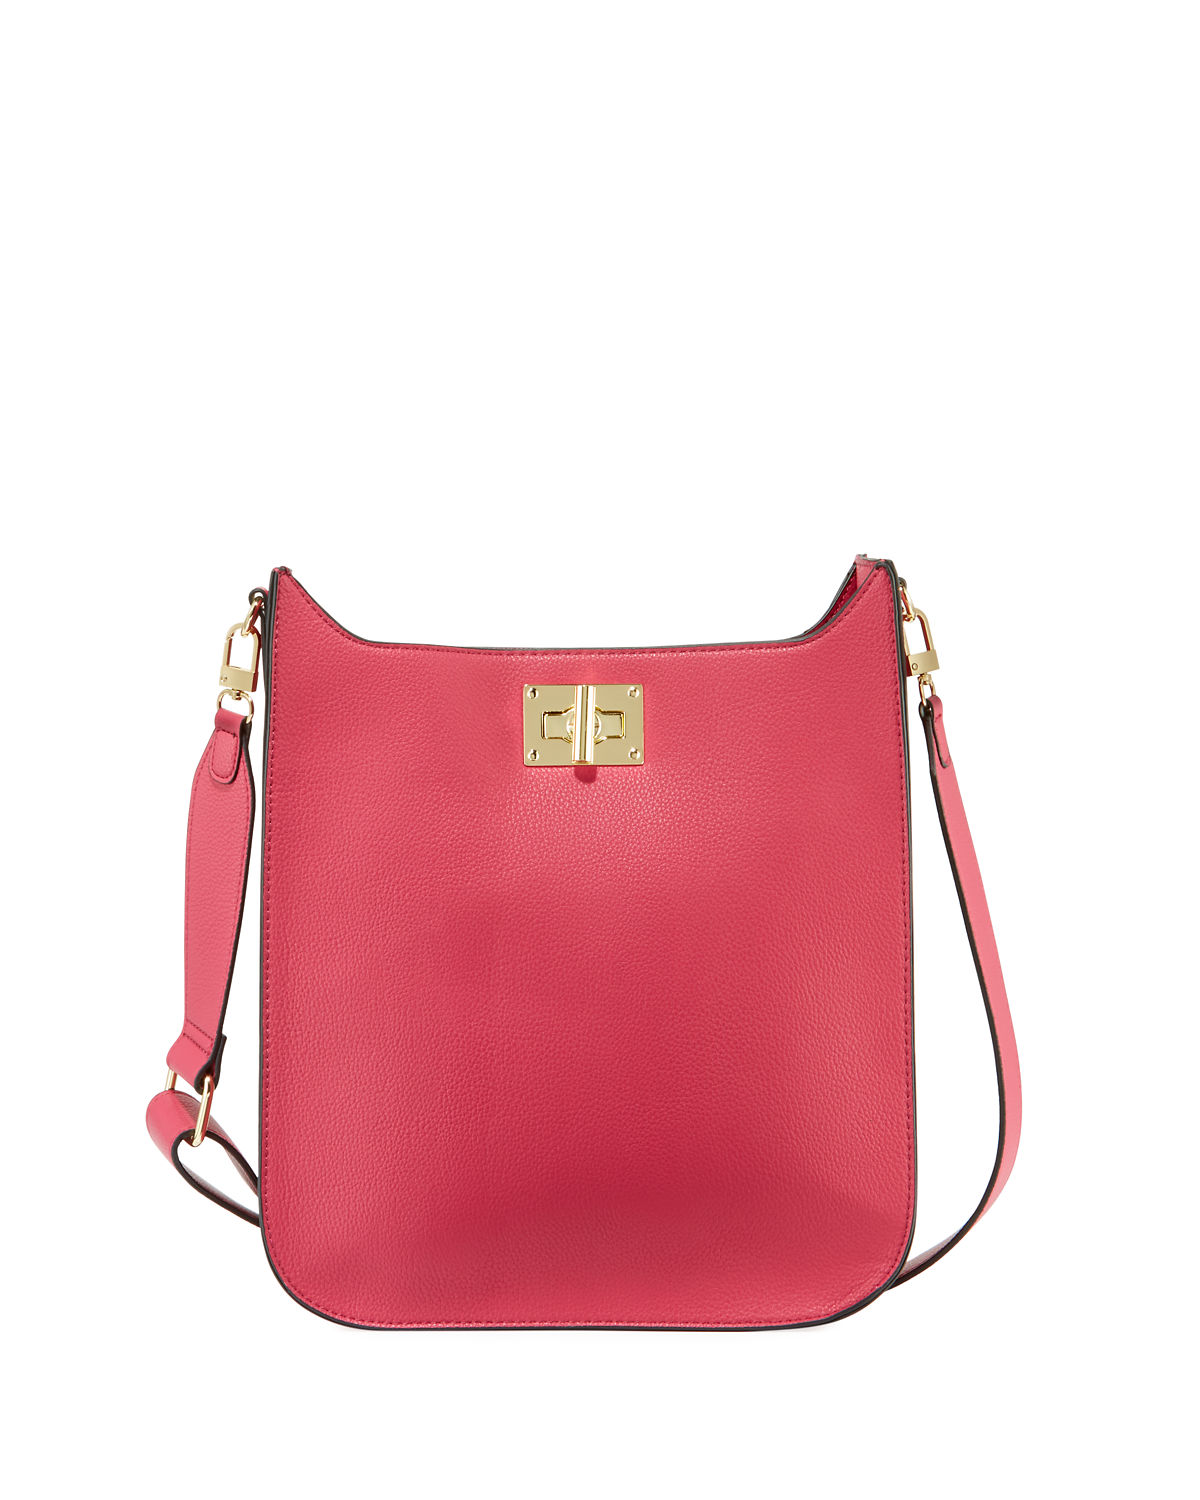 Elllie Faux-Leather Crossbody Bag